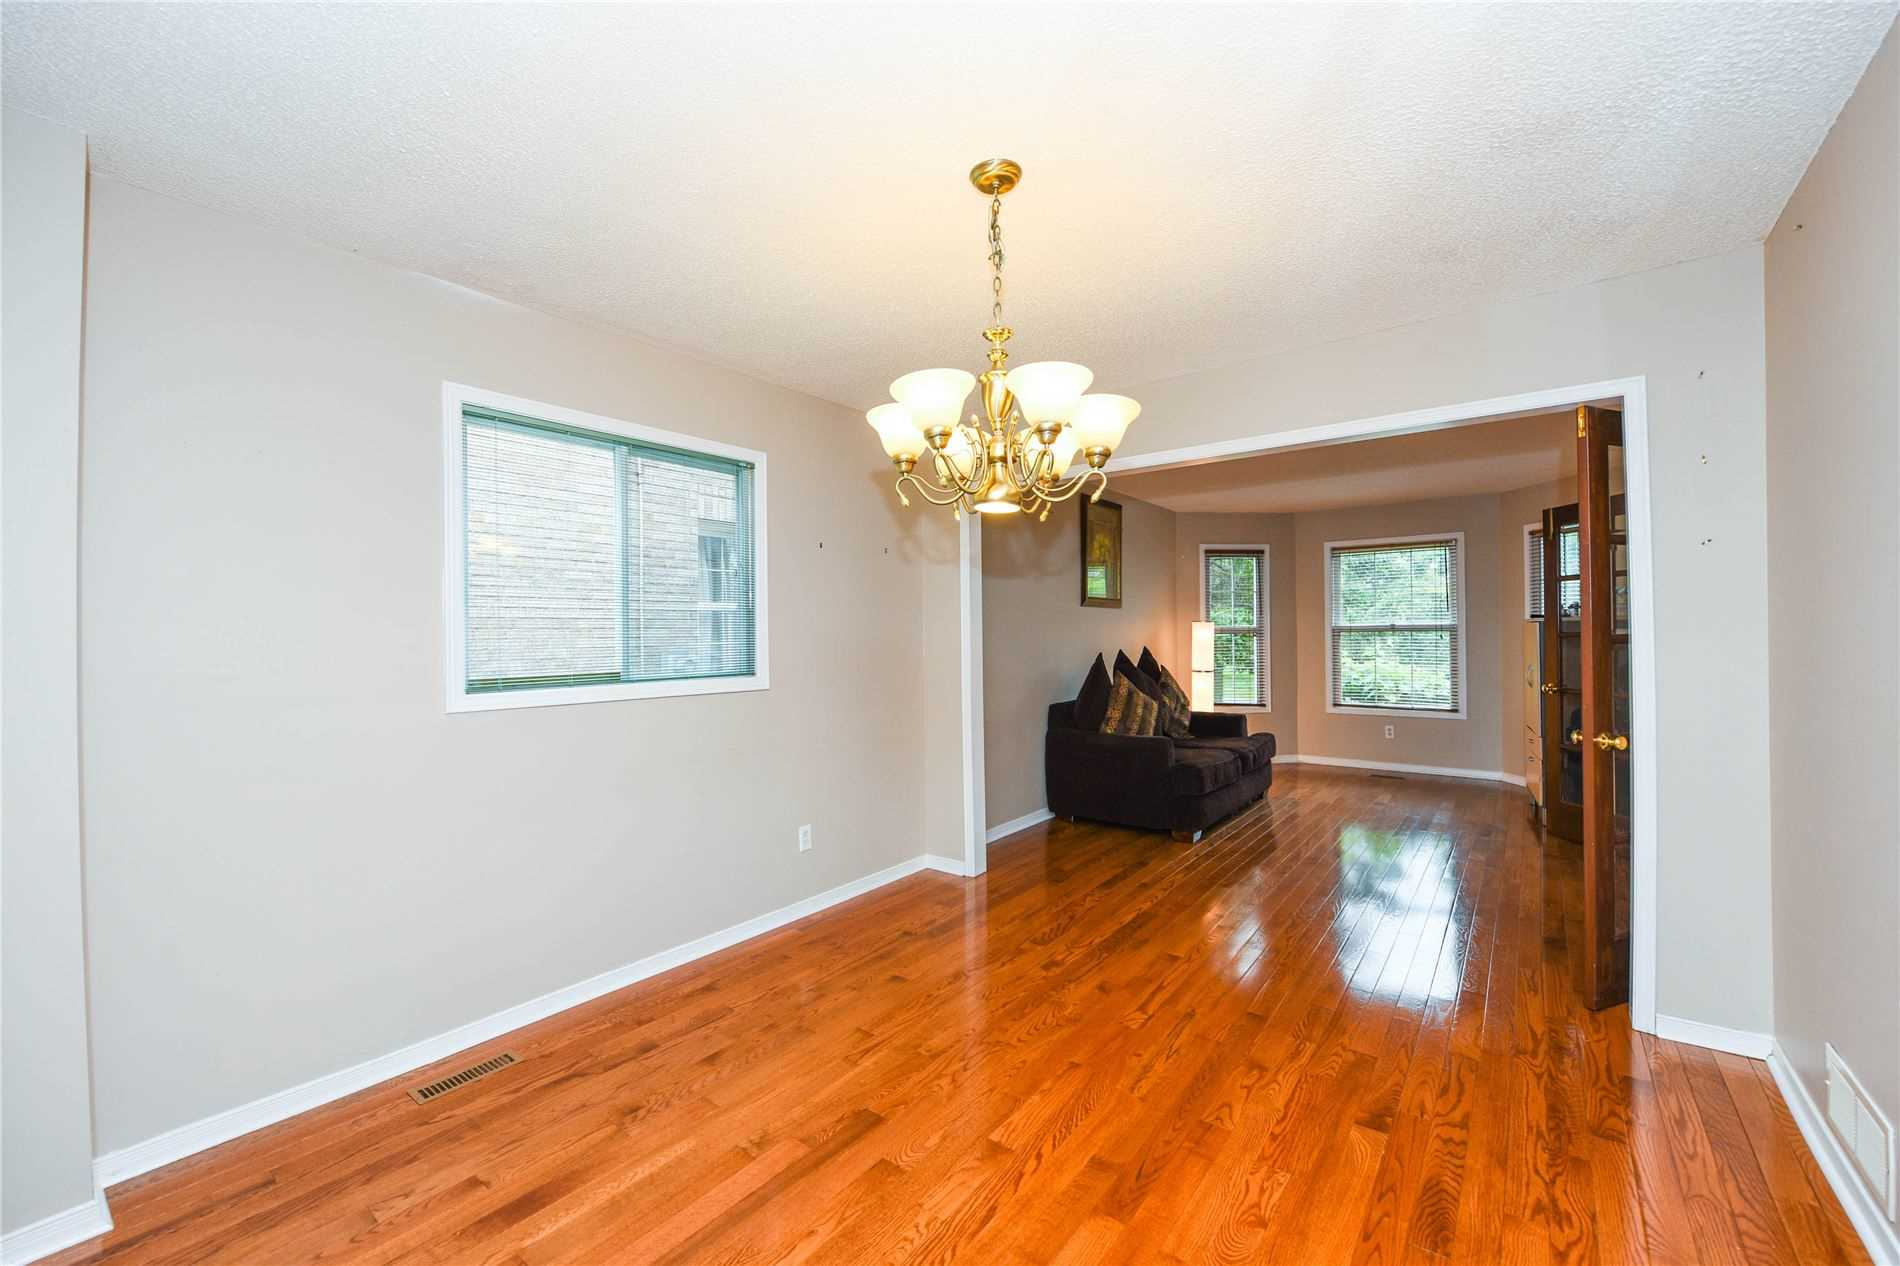 Listing W4876148 - Thumbmnail Photo # 16